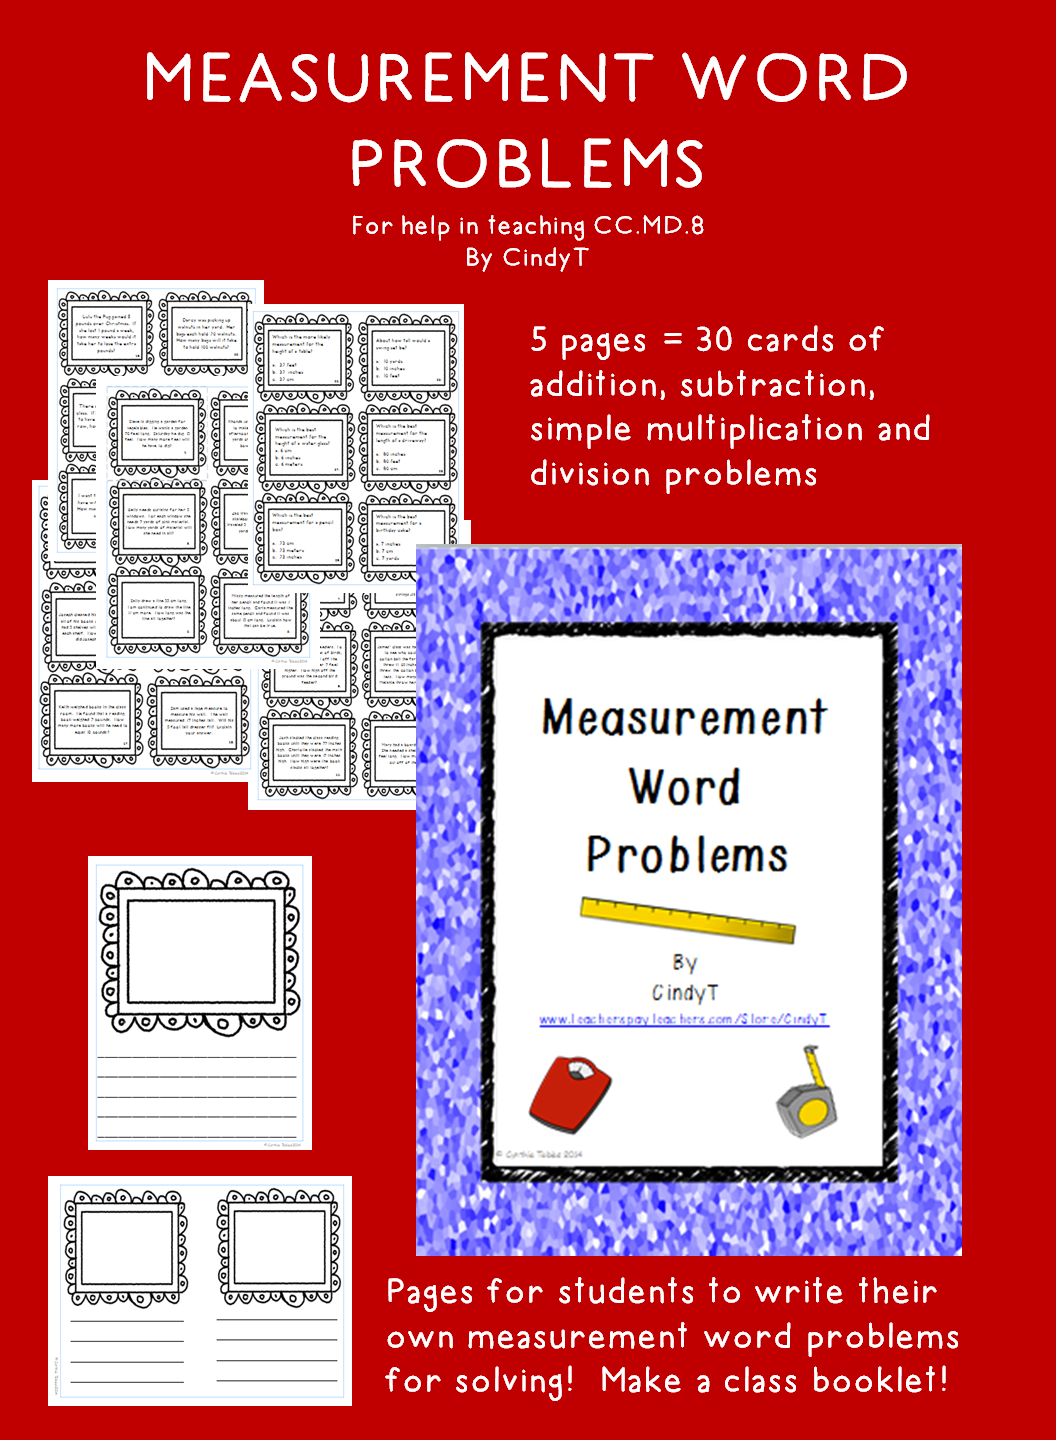 Measurement Word Problems To Help In Teaching 2 8